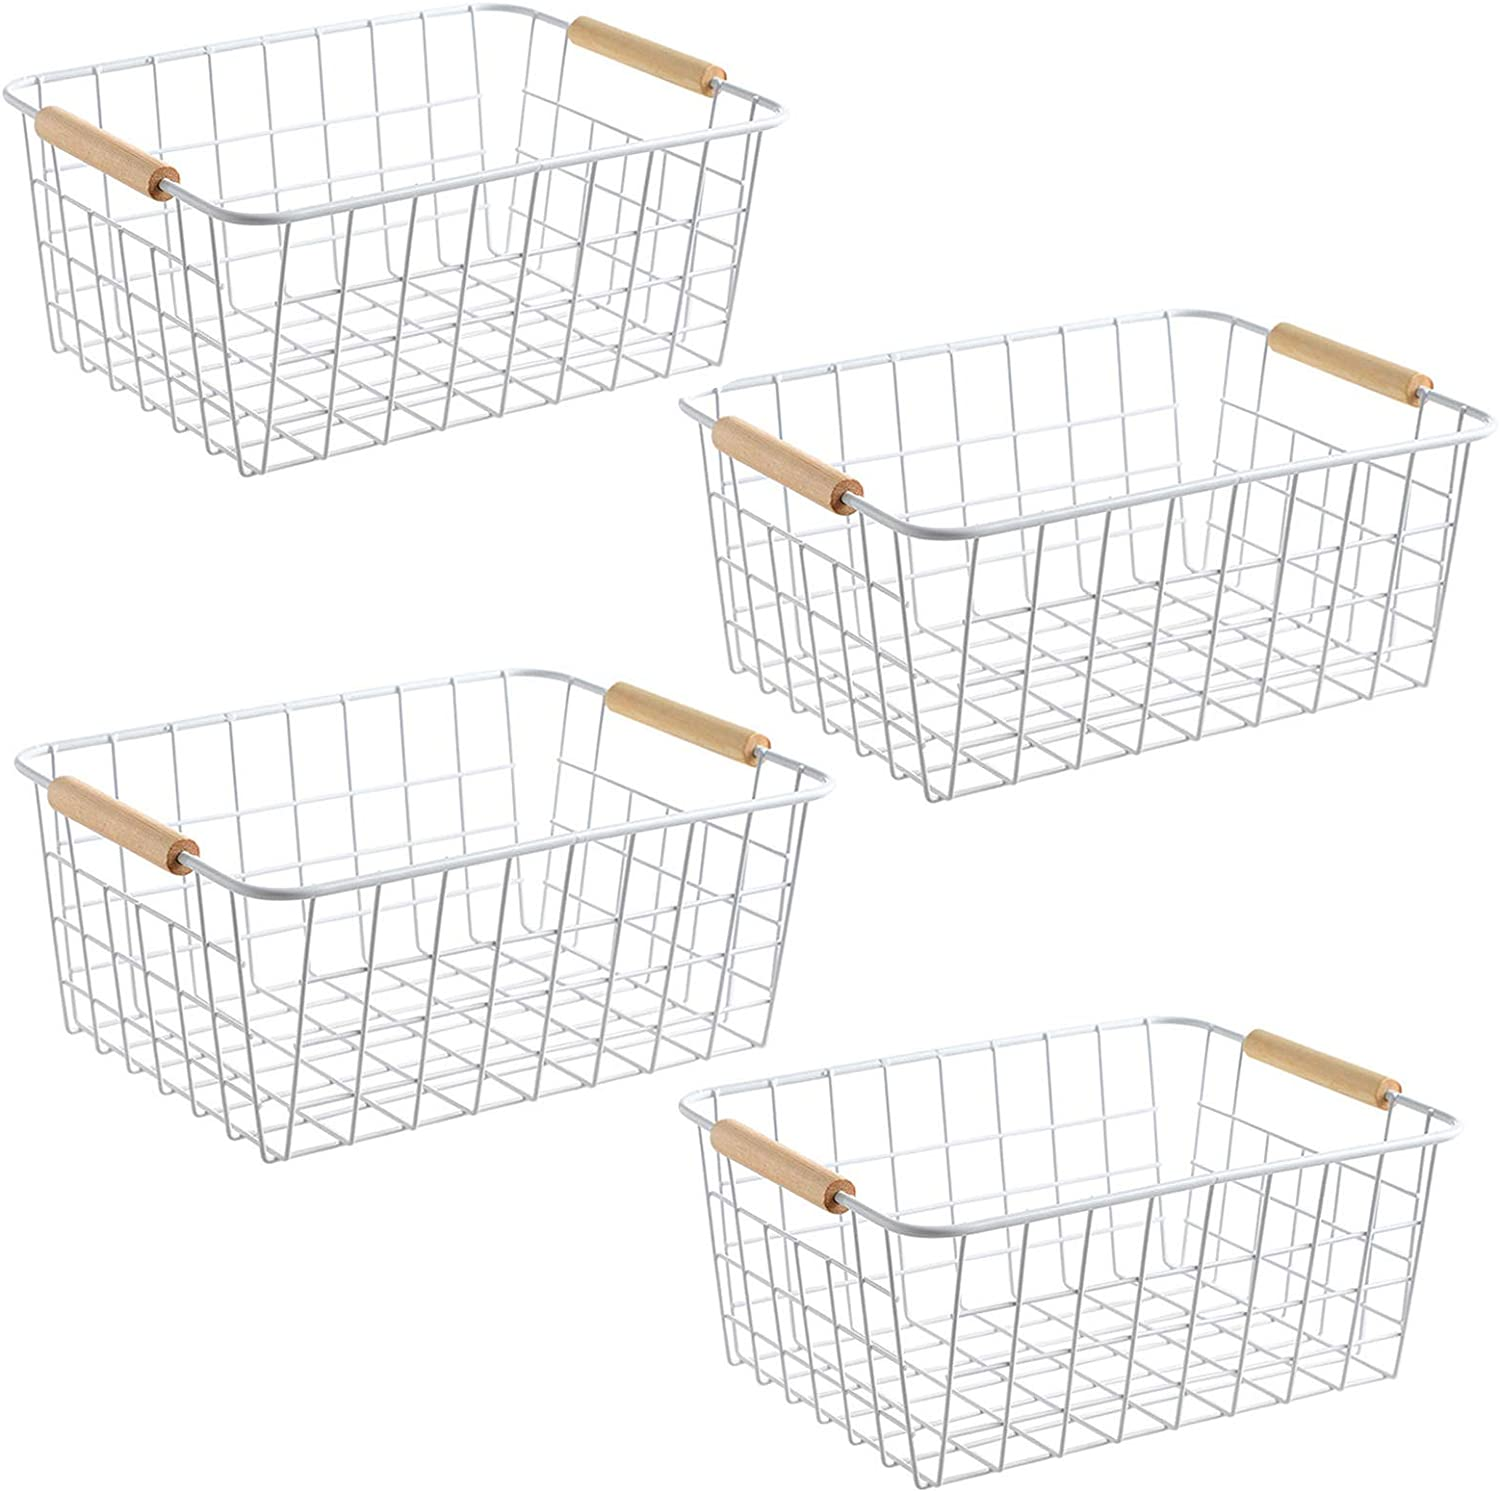 LeleCAT Wire Baskets with Handles Wire Storage Organizer Baskets For Kitchen, Household Refrigerator for Cabinets, Pantry, Closets, Bedrooms - Set of 4(White)